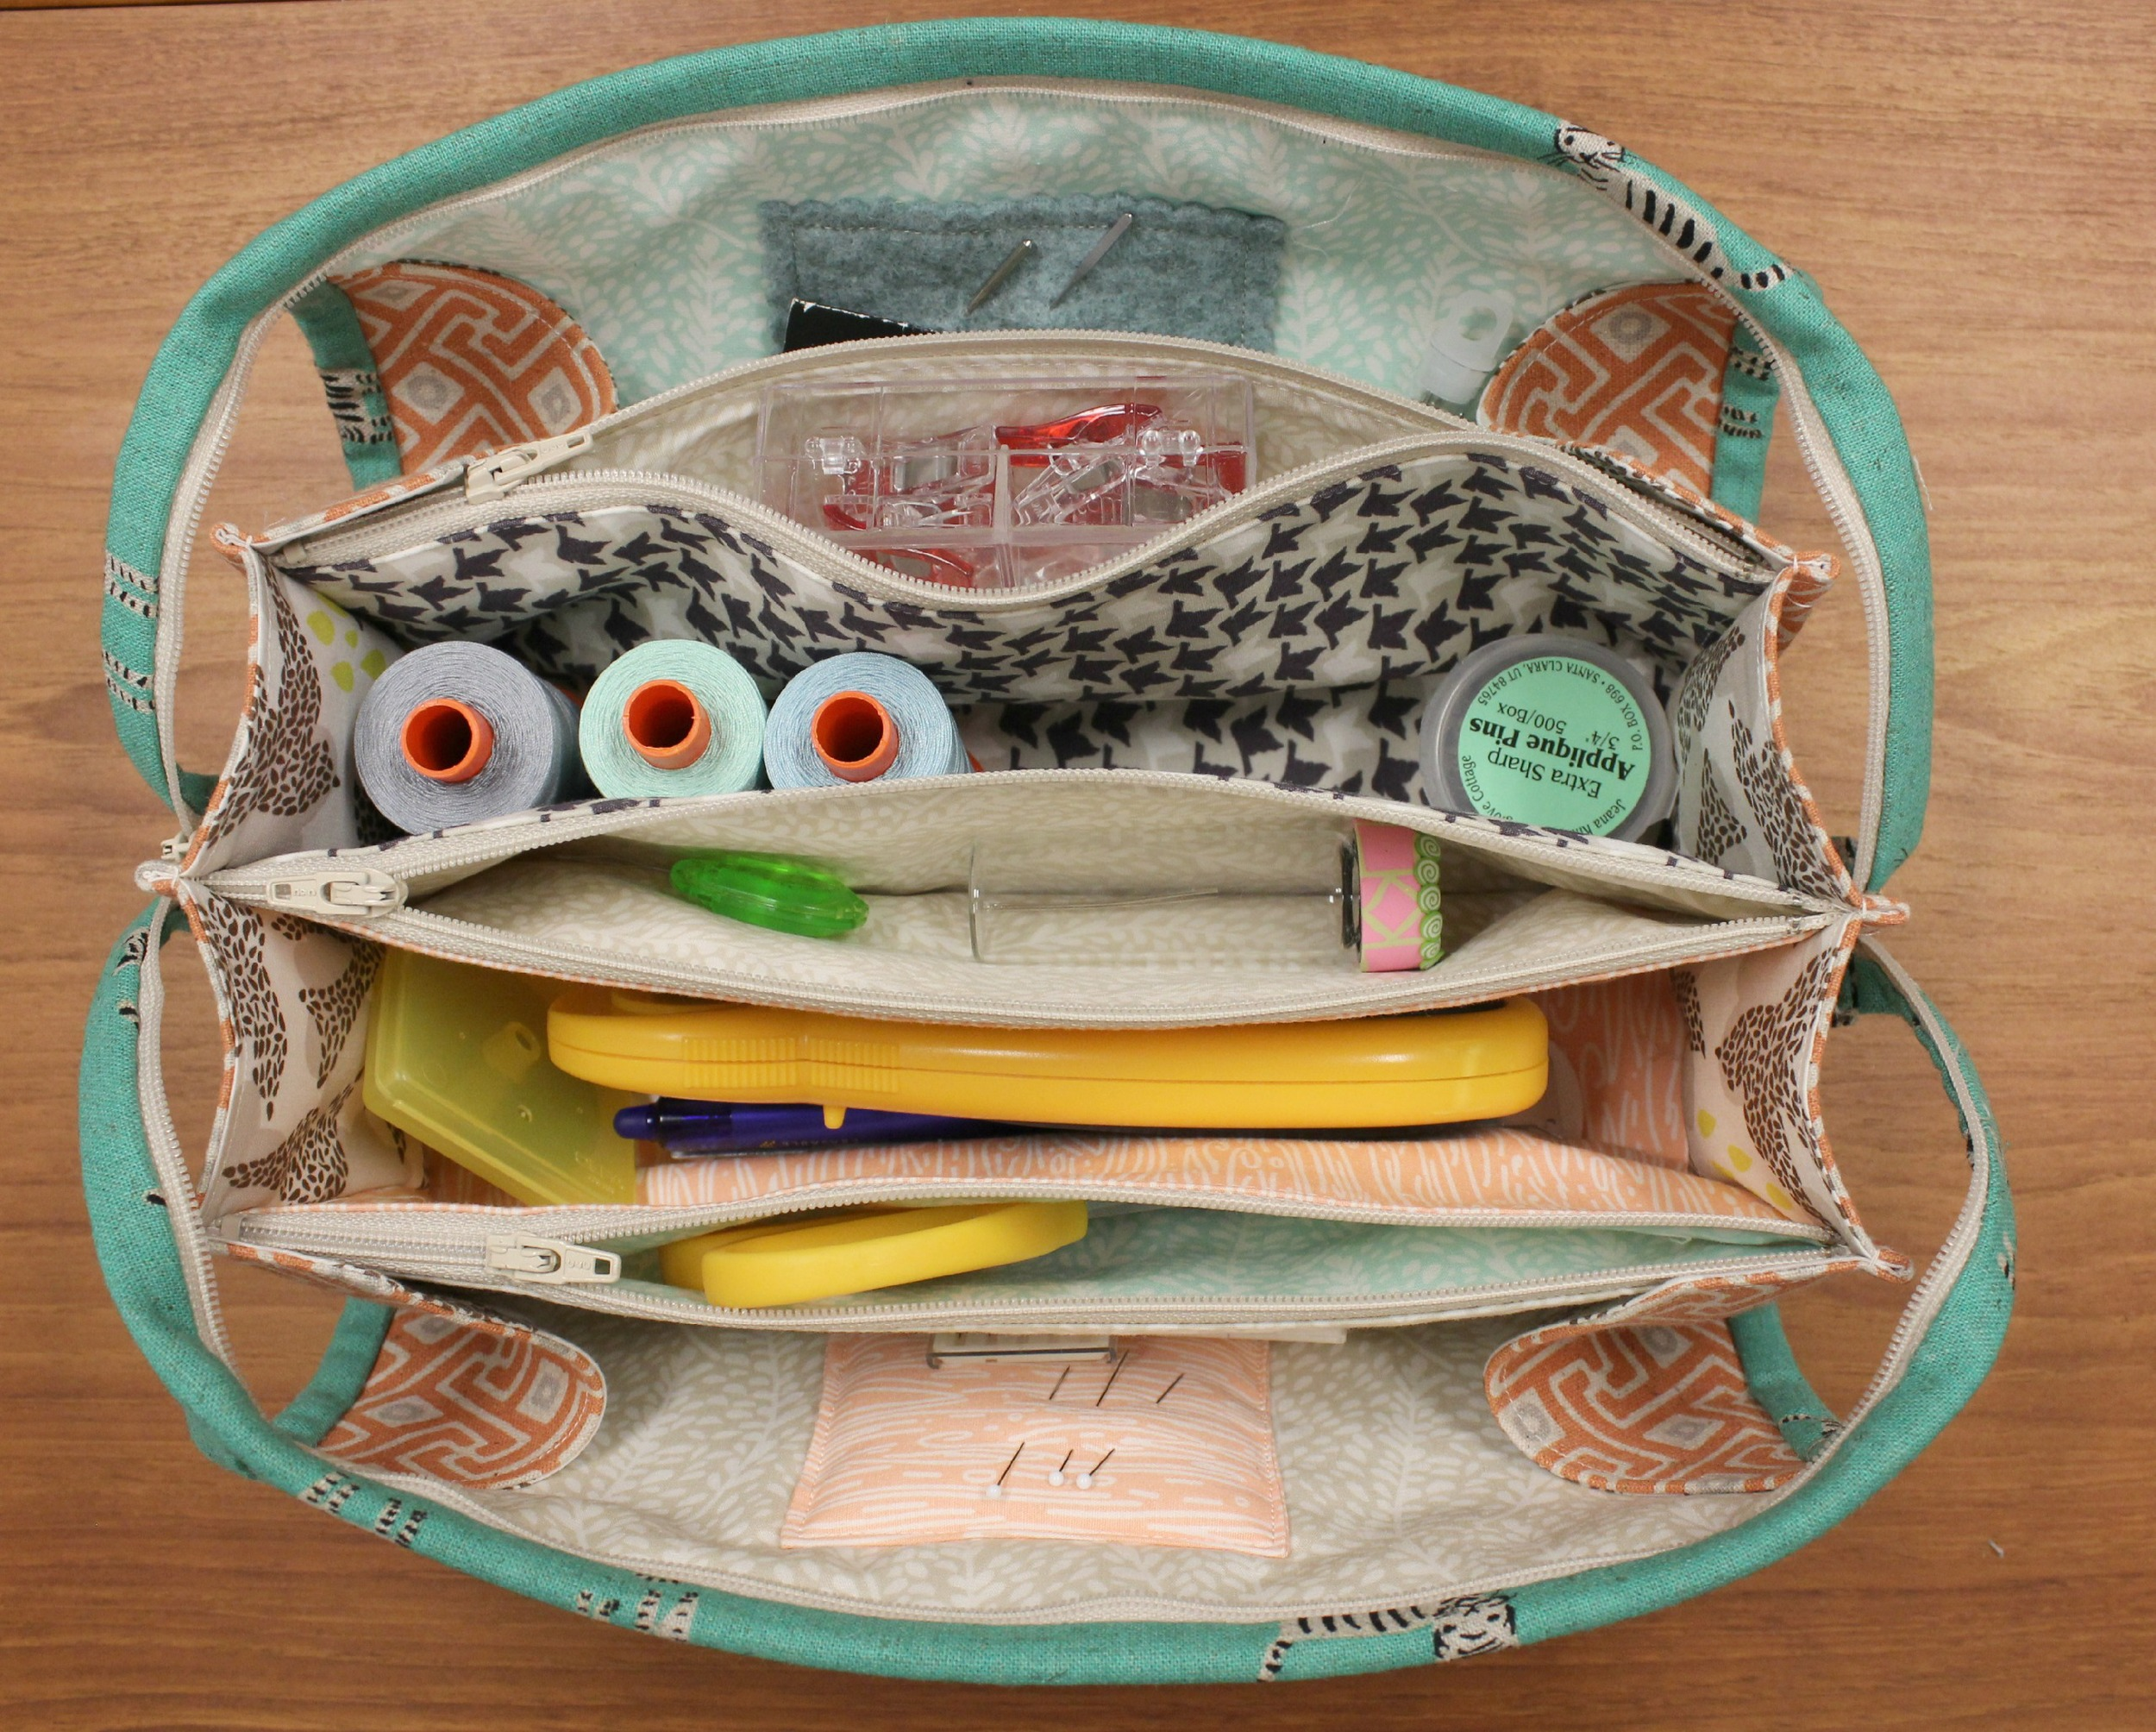 Filled Sew Together Bag